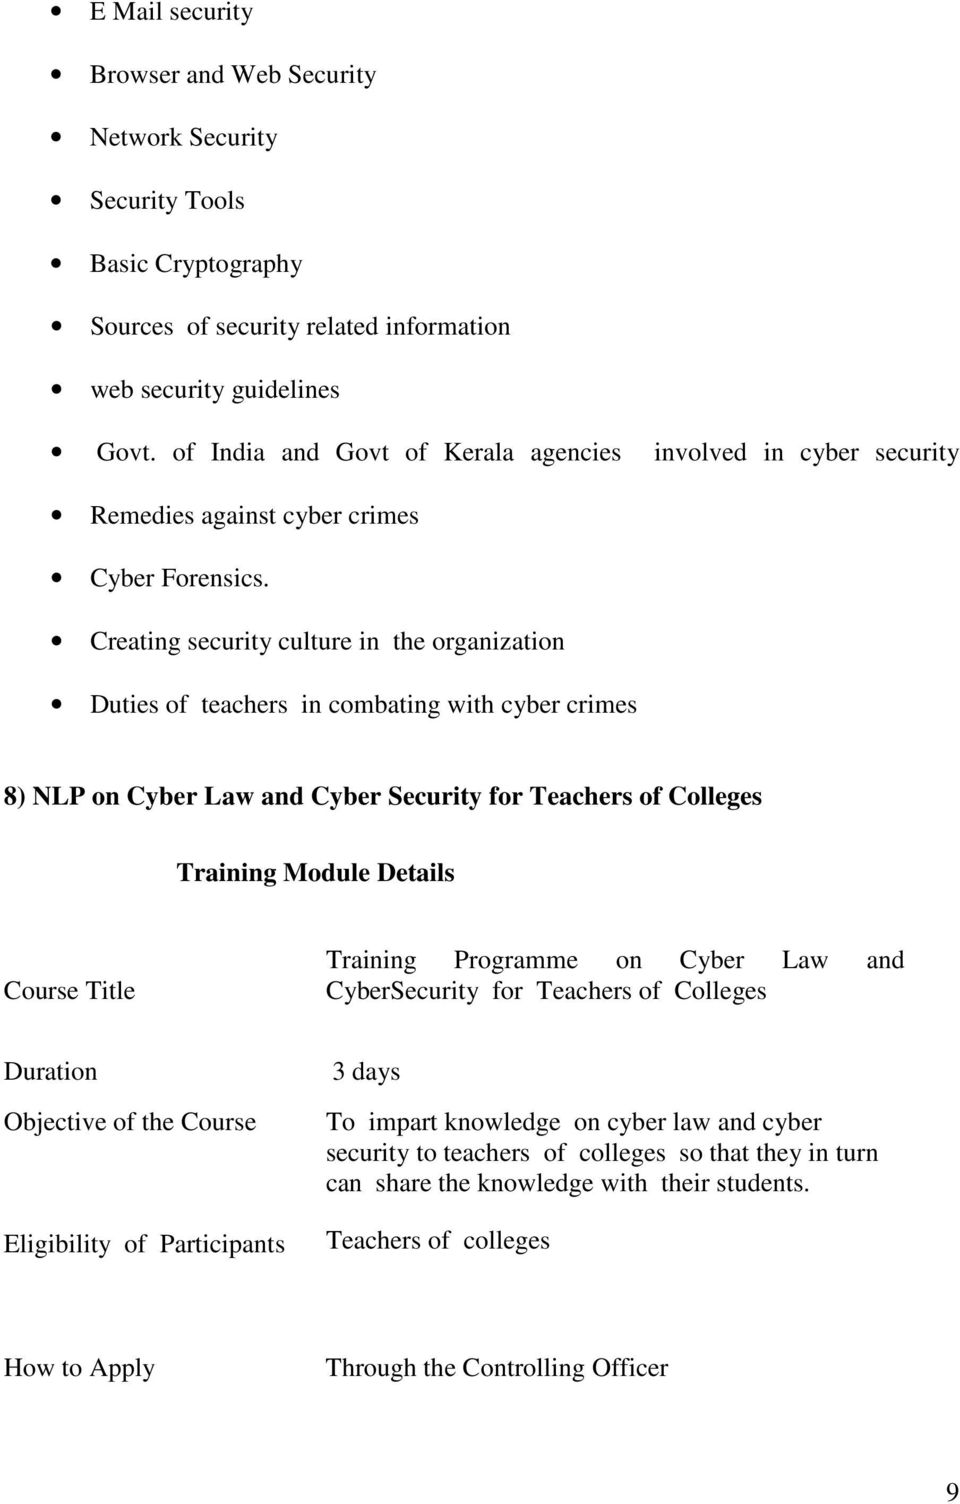 Creating security culture in the organization Duties of teachers in combating with cyber crimes 8) NLP on Cyber Law and Cyber Security for Teachers of Colleges Training